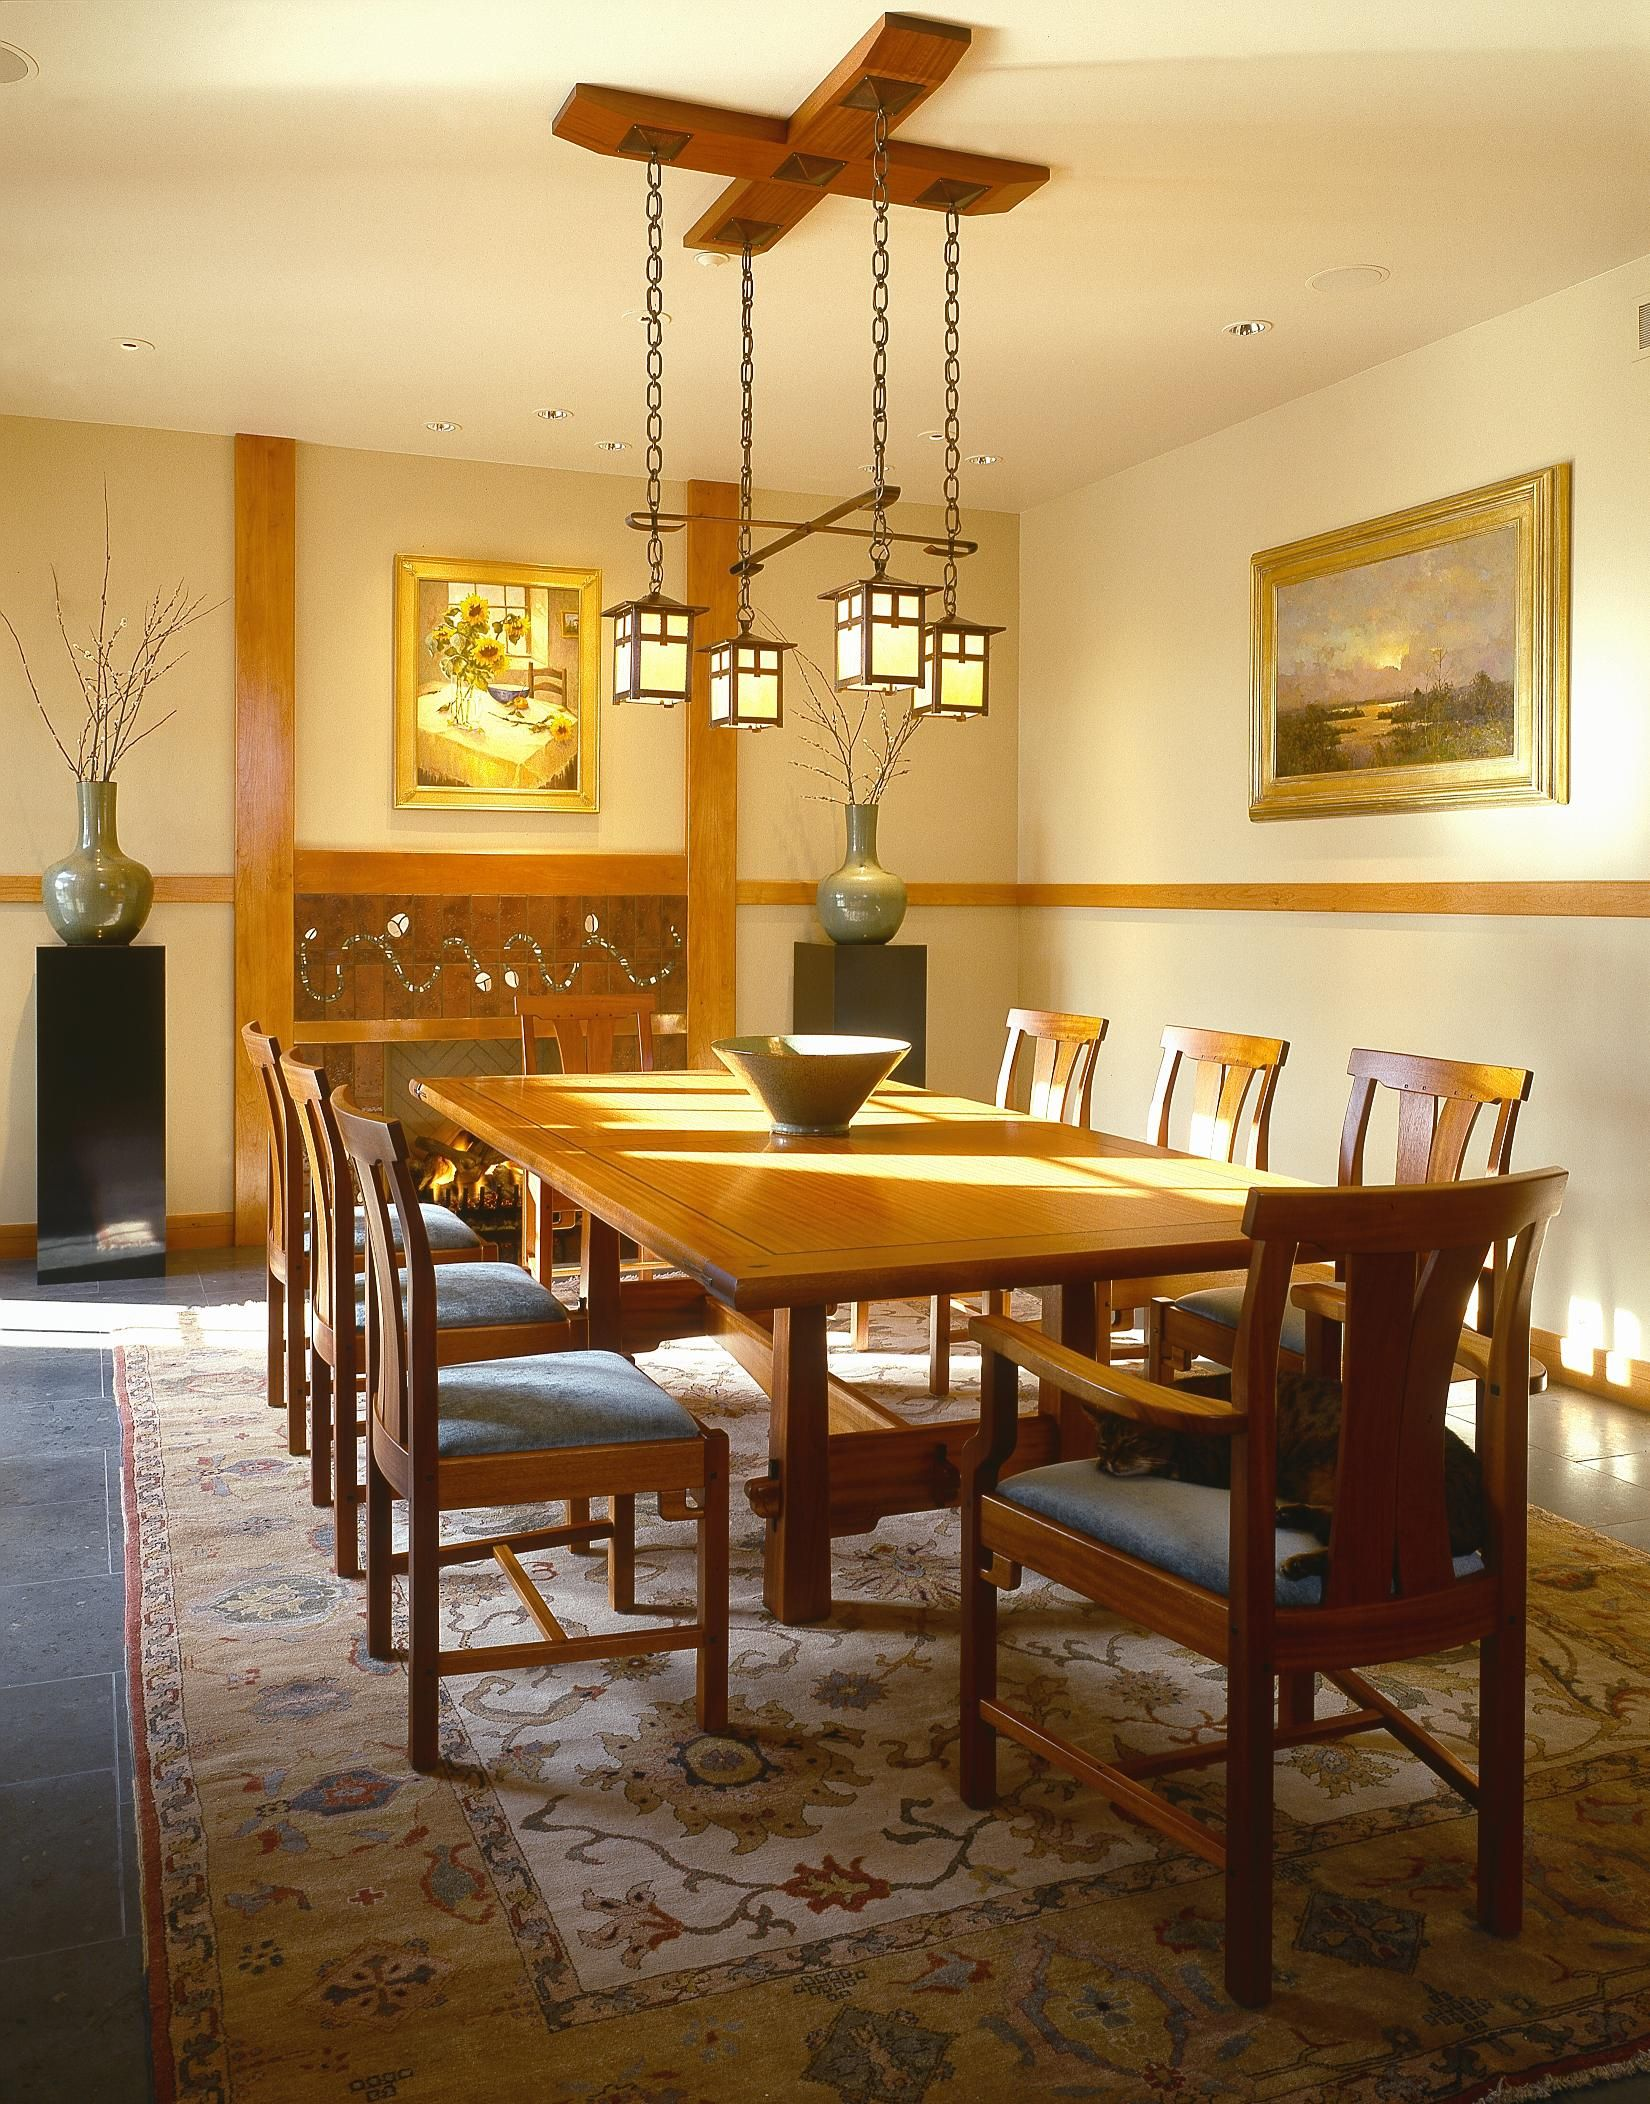 Pyramid Leg Dining Table and Strand Chairs by NWG member Tom